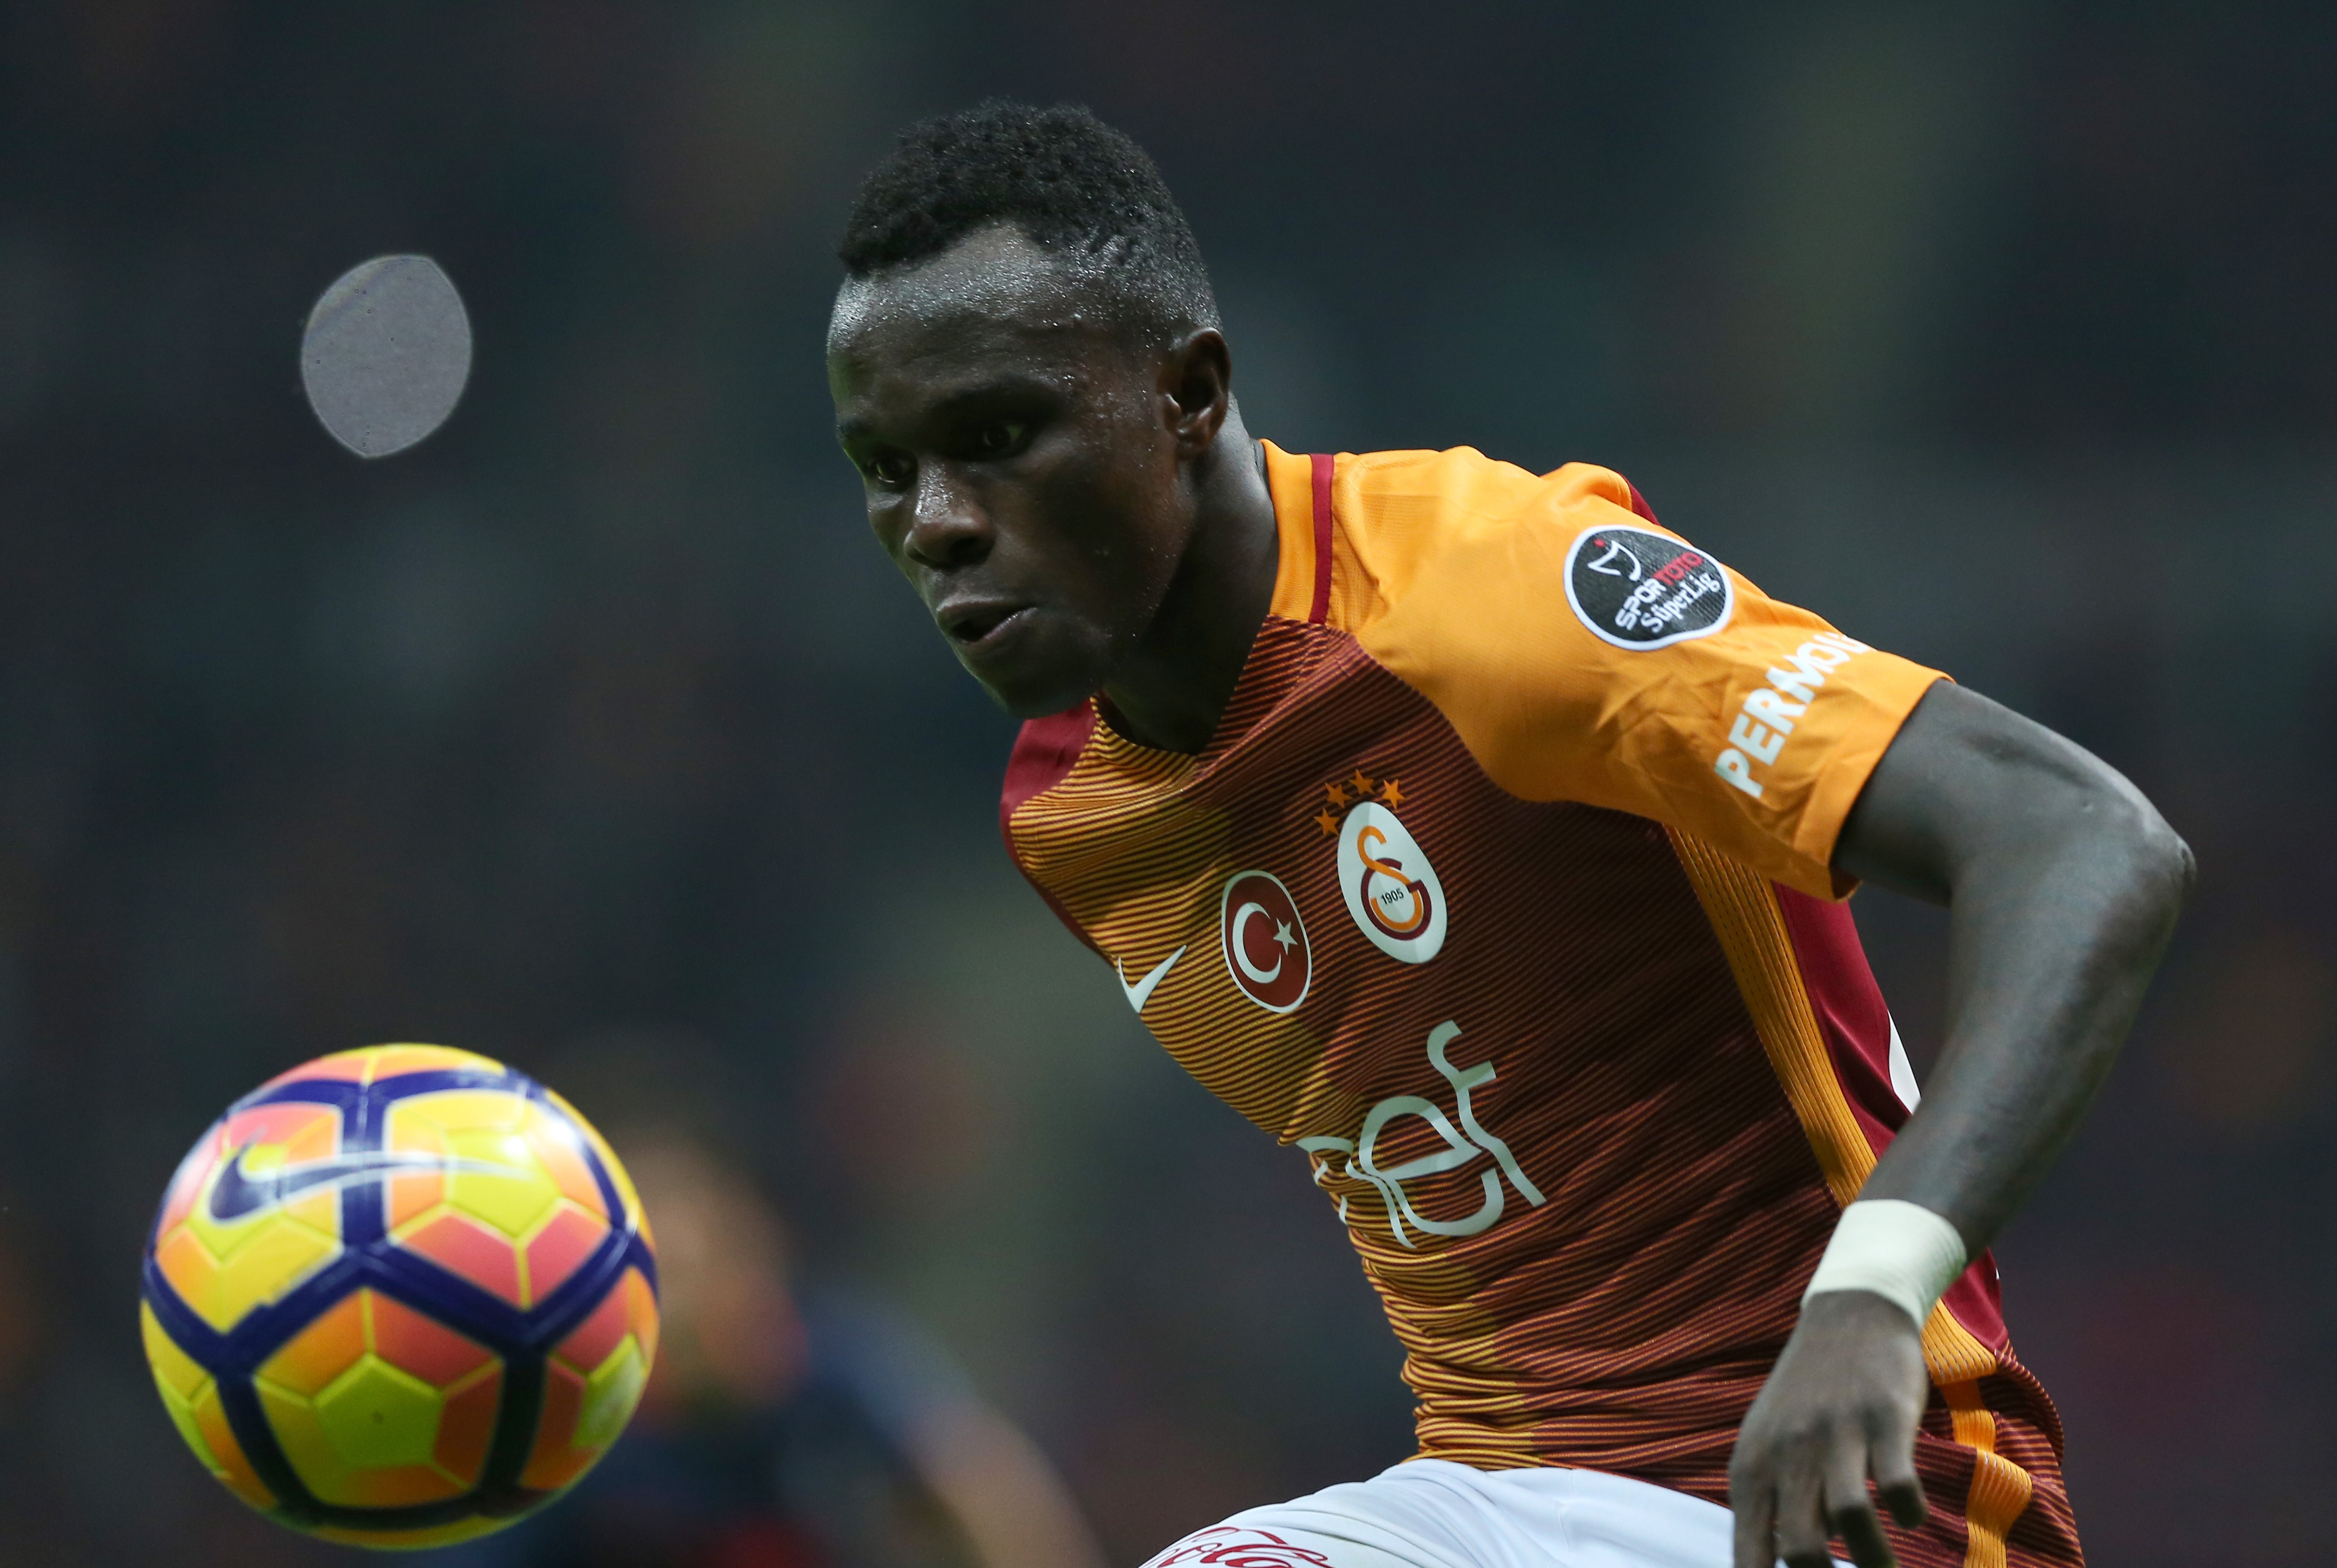 ISTANBUL, TURKEY - NOVEMBER 4: Bruma of Galatasaray in action during the Turkish Spor Toto Super League soccer match between Galatasaray SK and Medipol Basaksehir at Turk Telekom Arena Stadium in Istanbul, Turkey on November 4, 2016. (Photo by Berk Ozkan/Anadolu Agency/Getty Images)